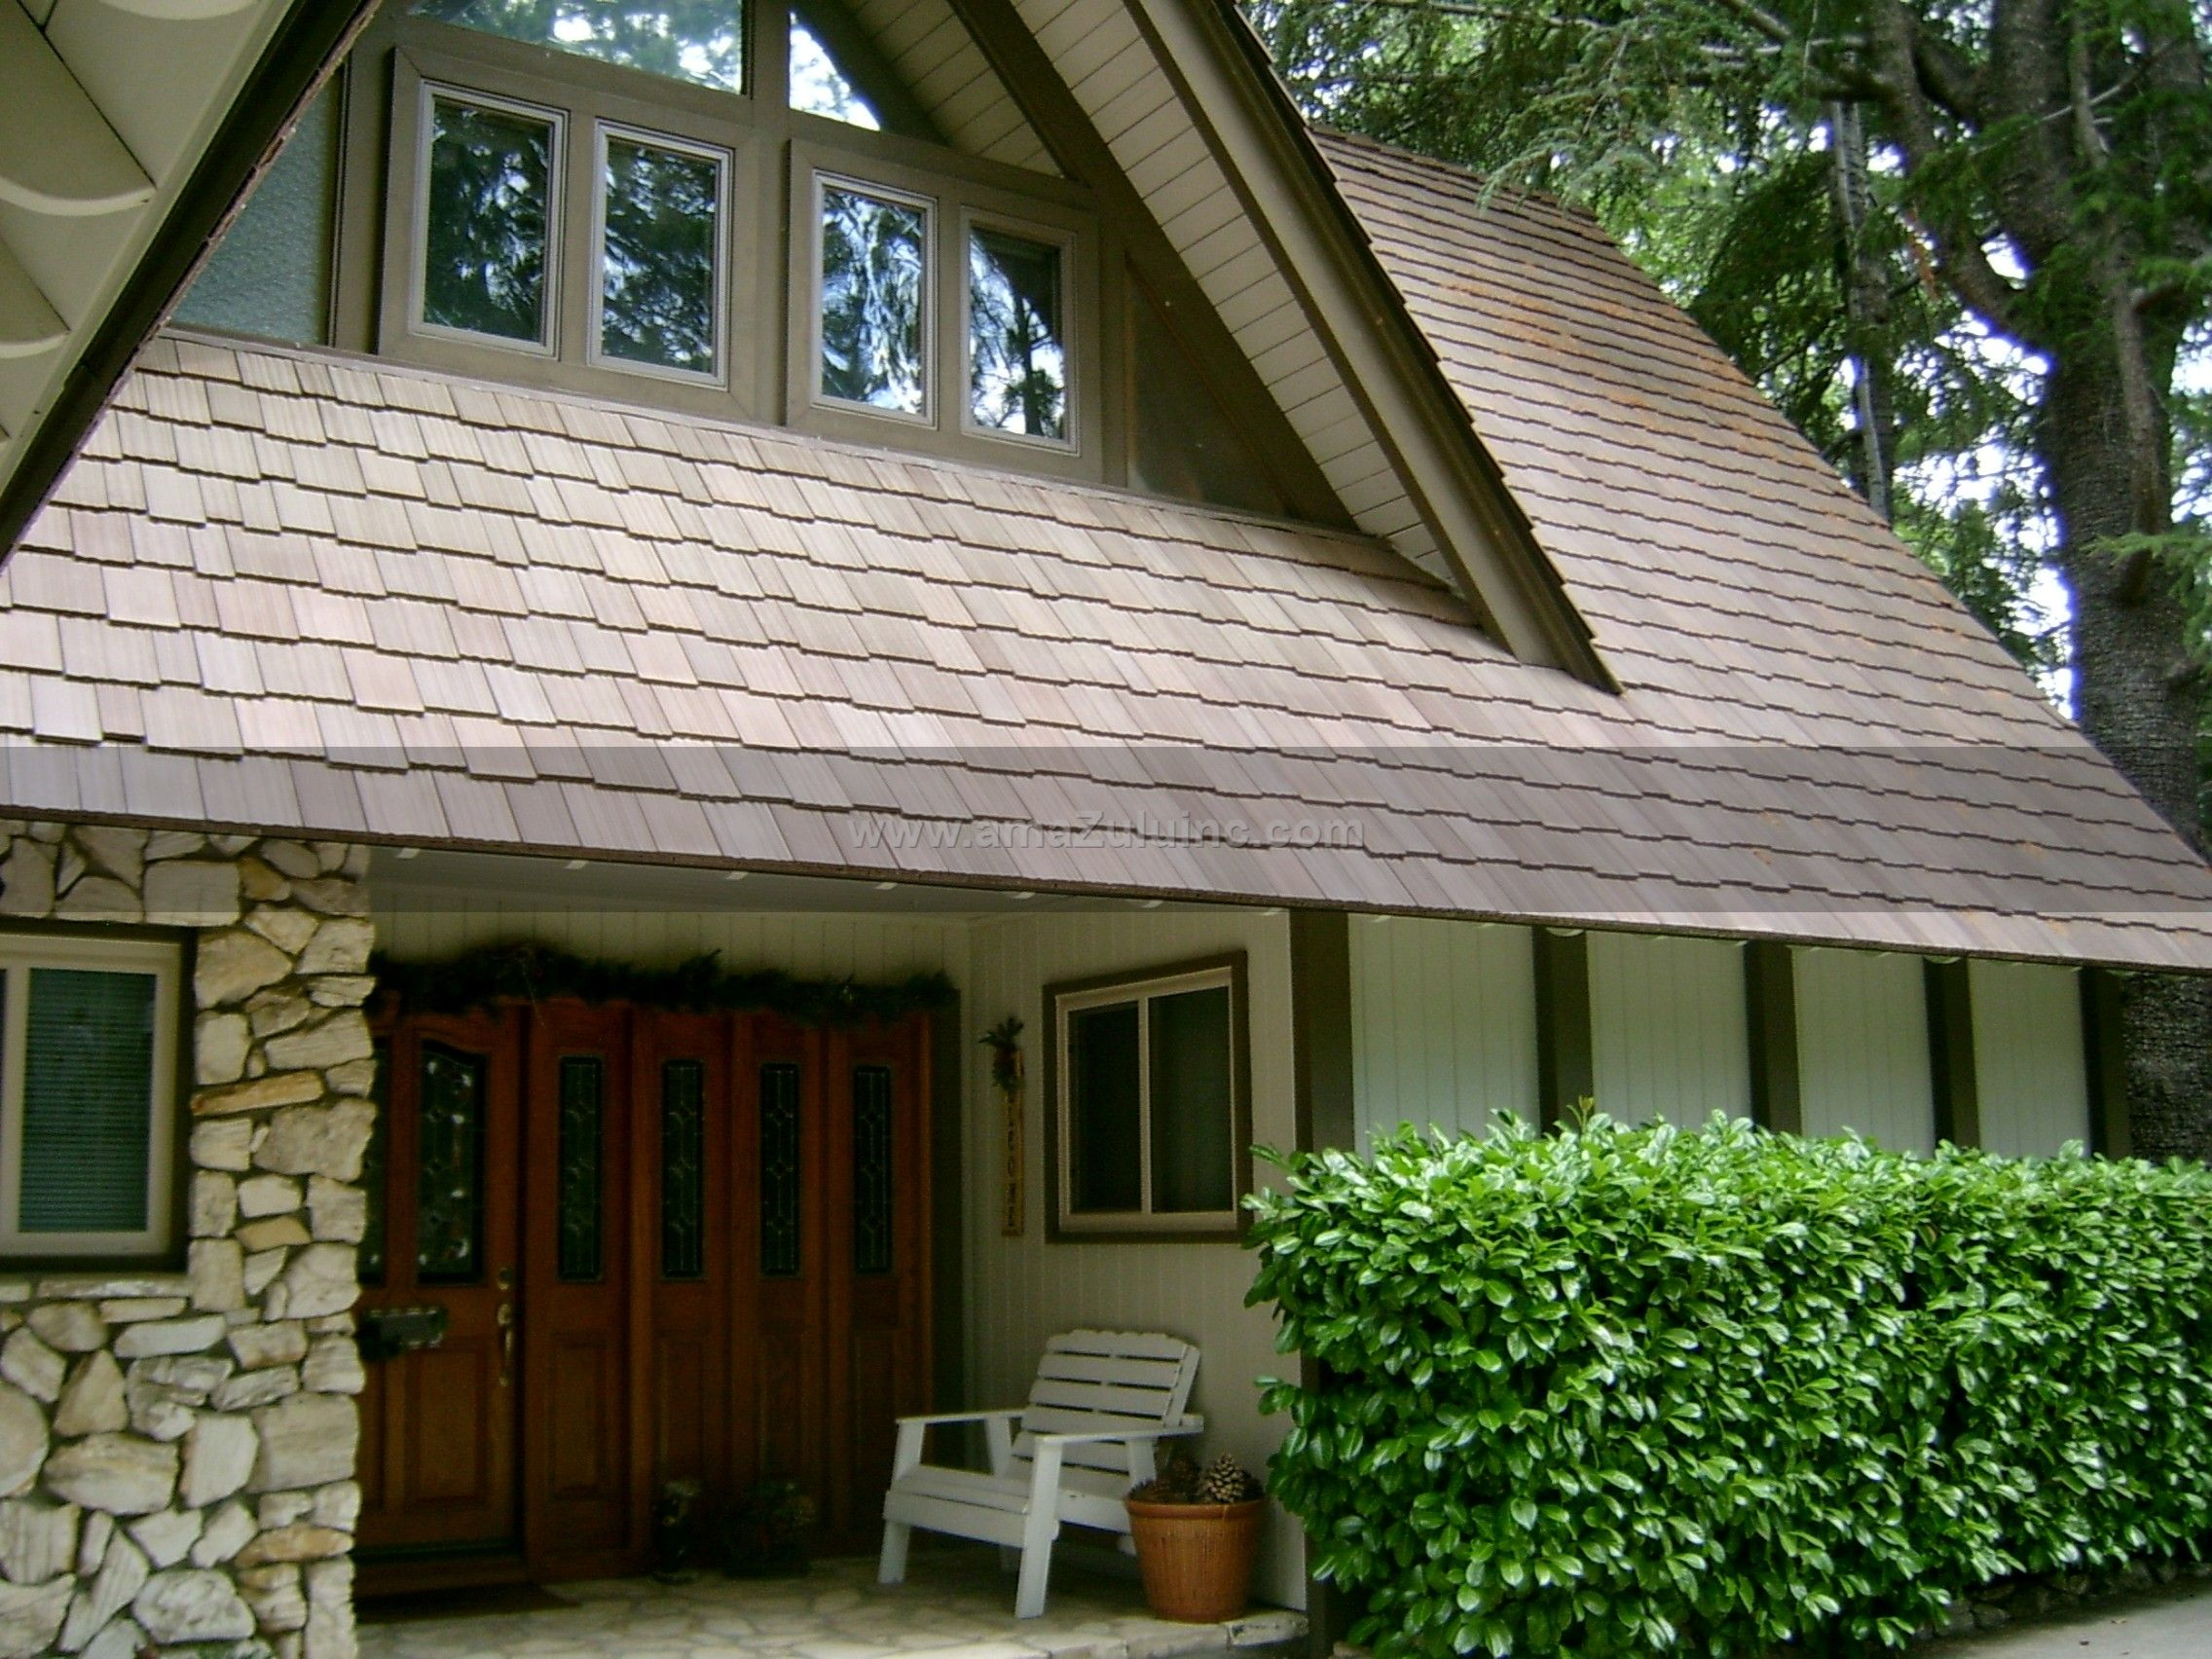 Best Faux Cedar Roof Tiles Faux Cedar Shake Tile In 2019 640 x 480